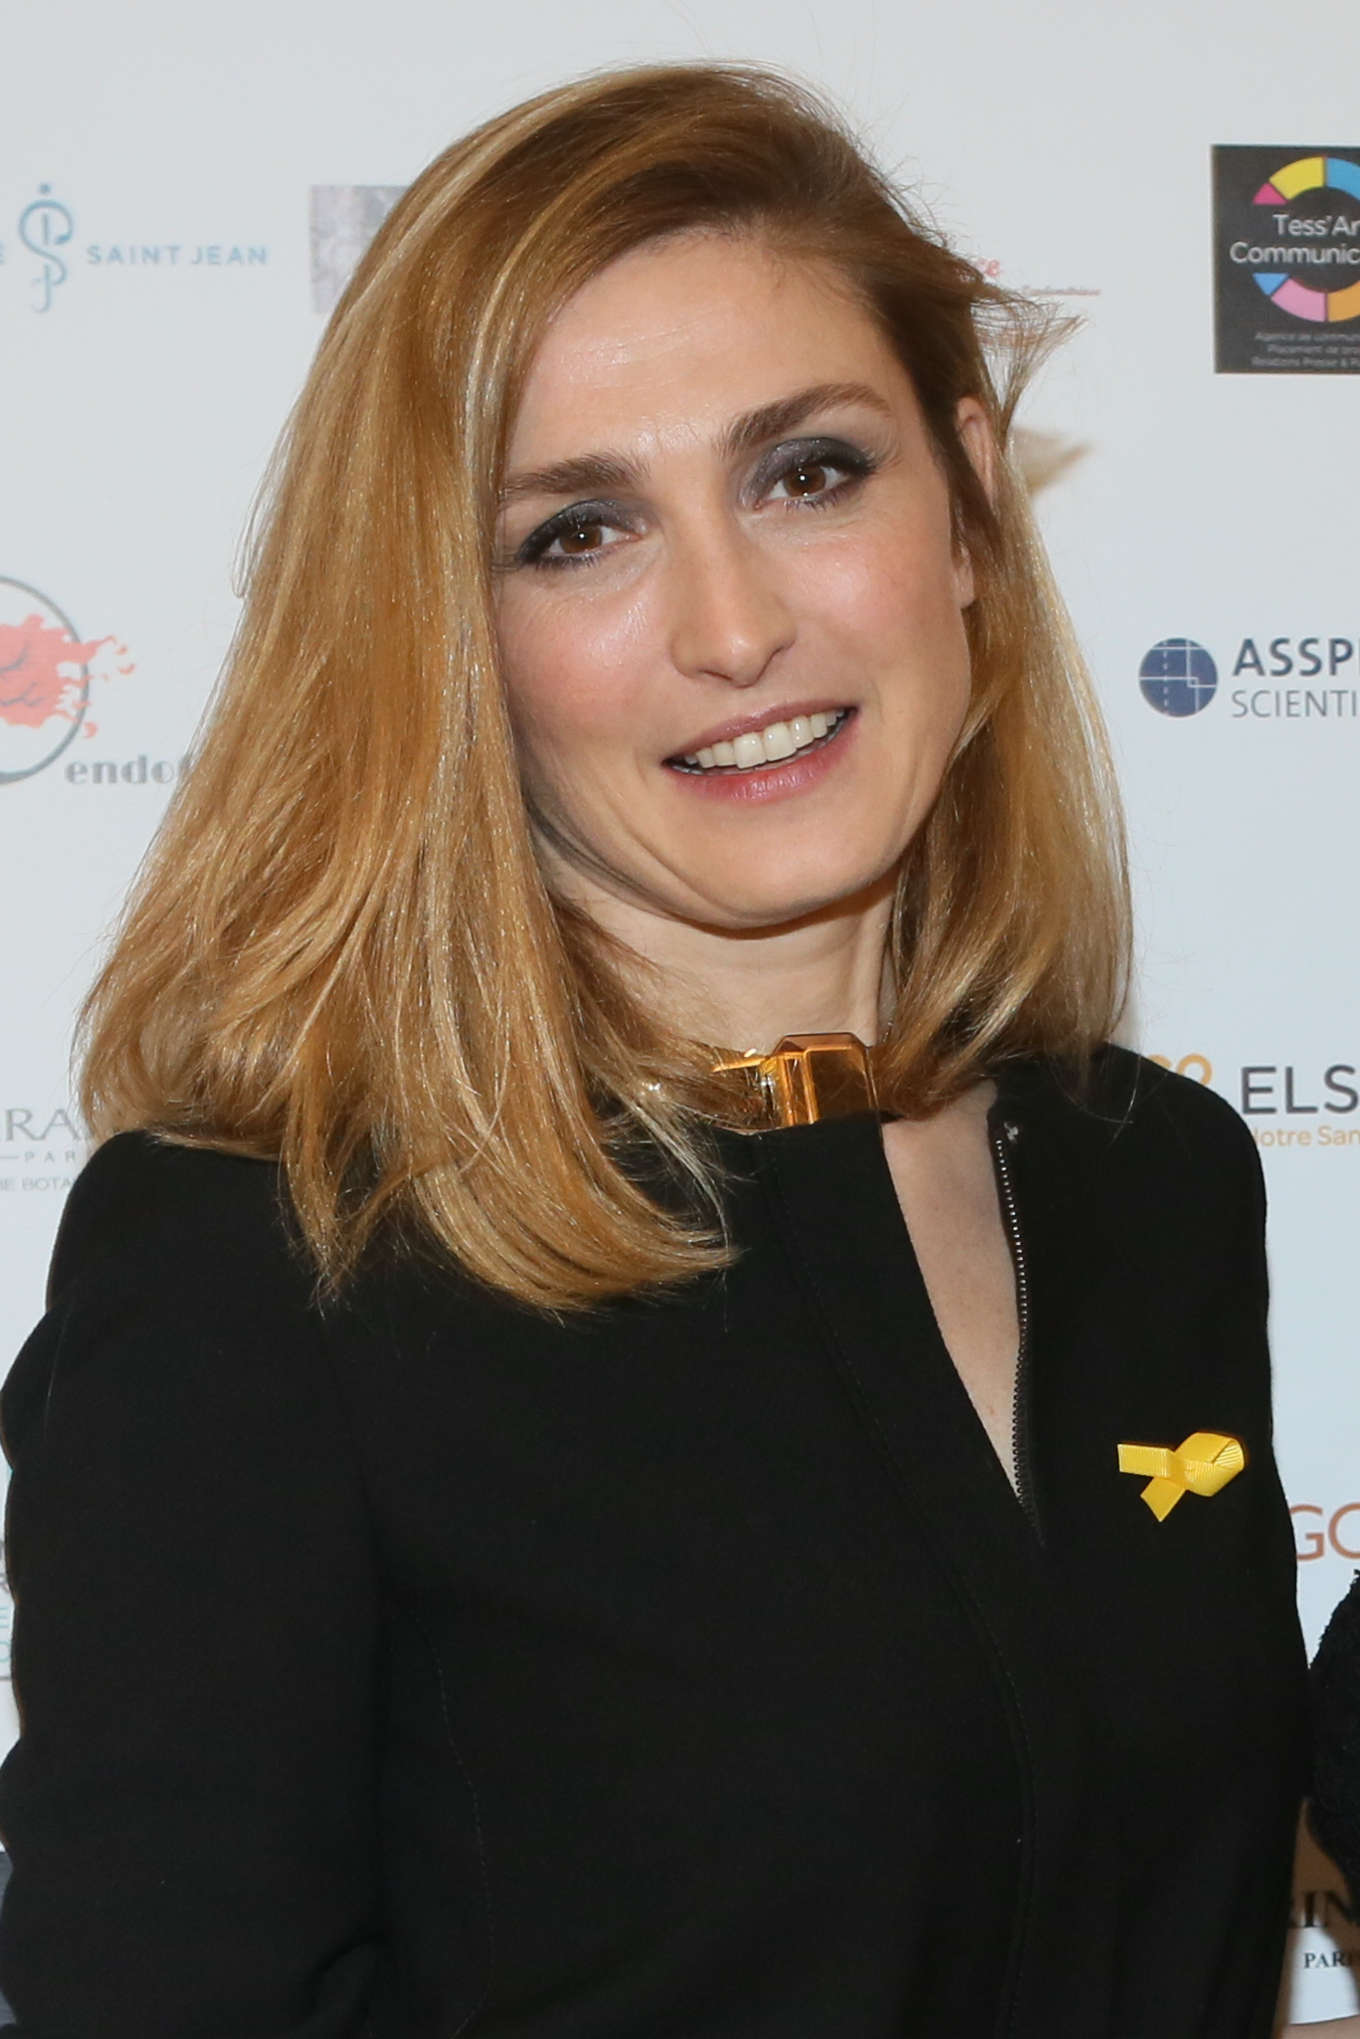 Julie Gayet Endofrance Charity Gala Photocall in Paris